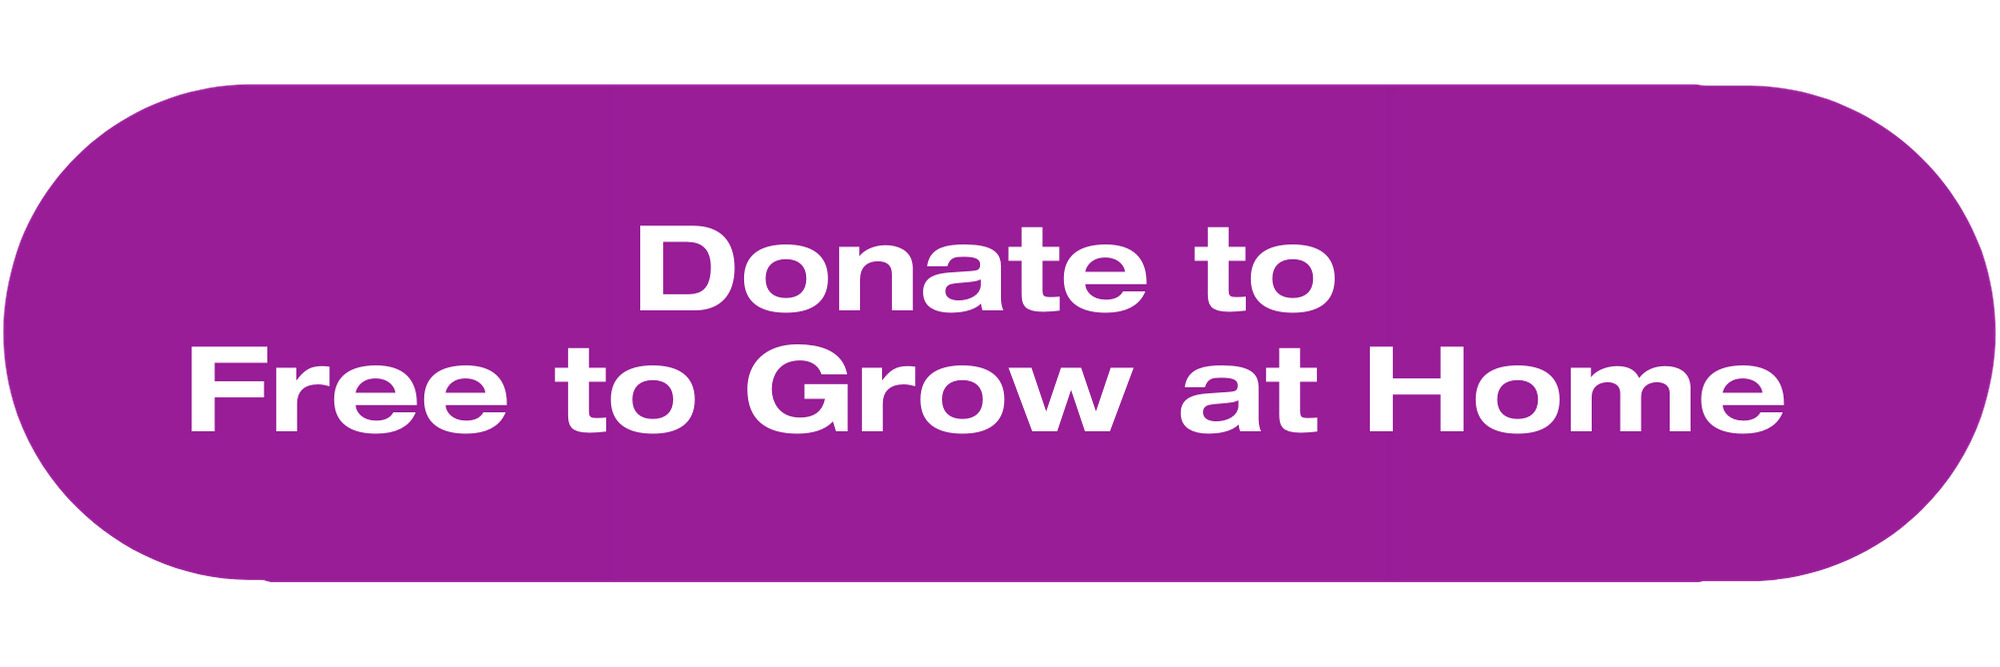 Donate to Free to Grow at Home